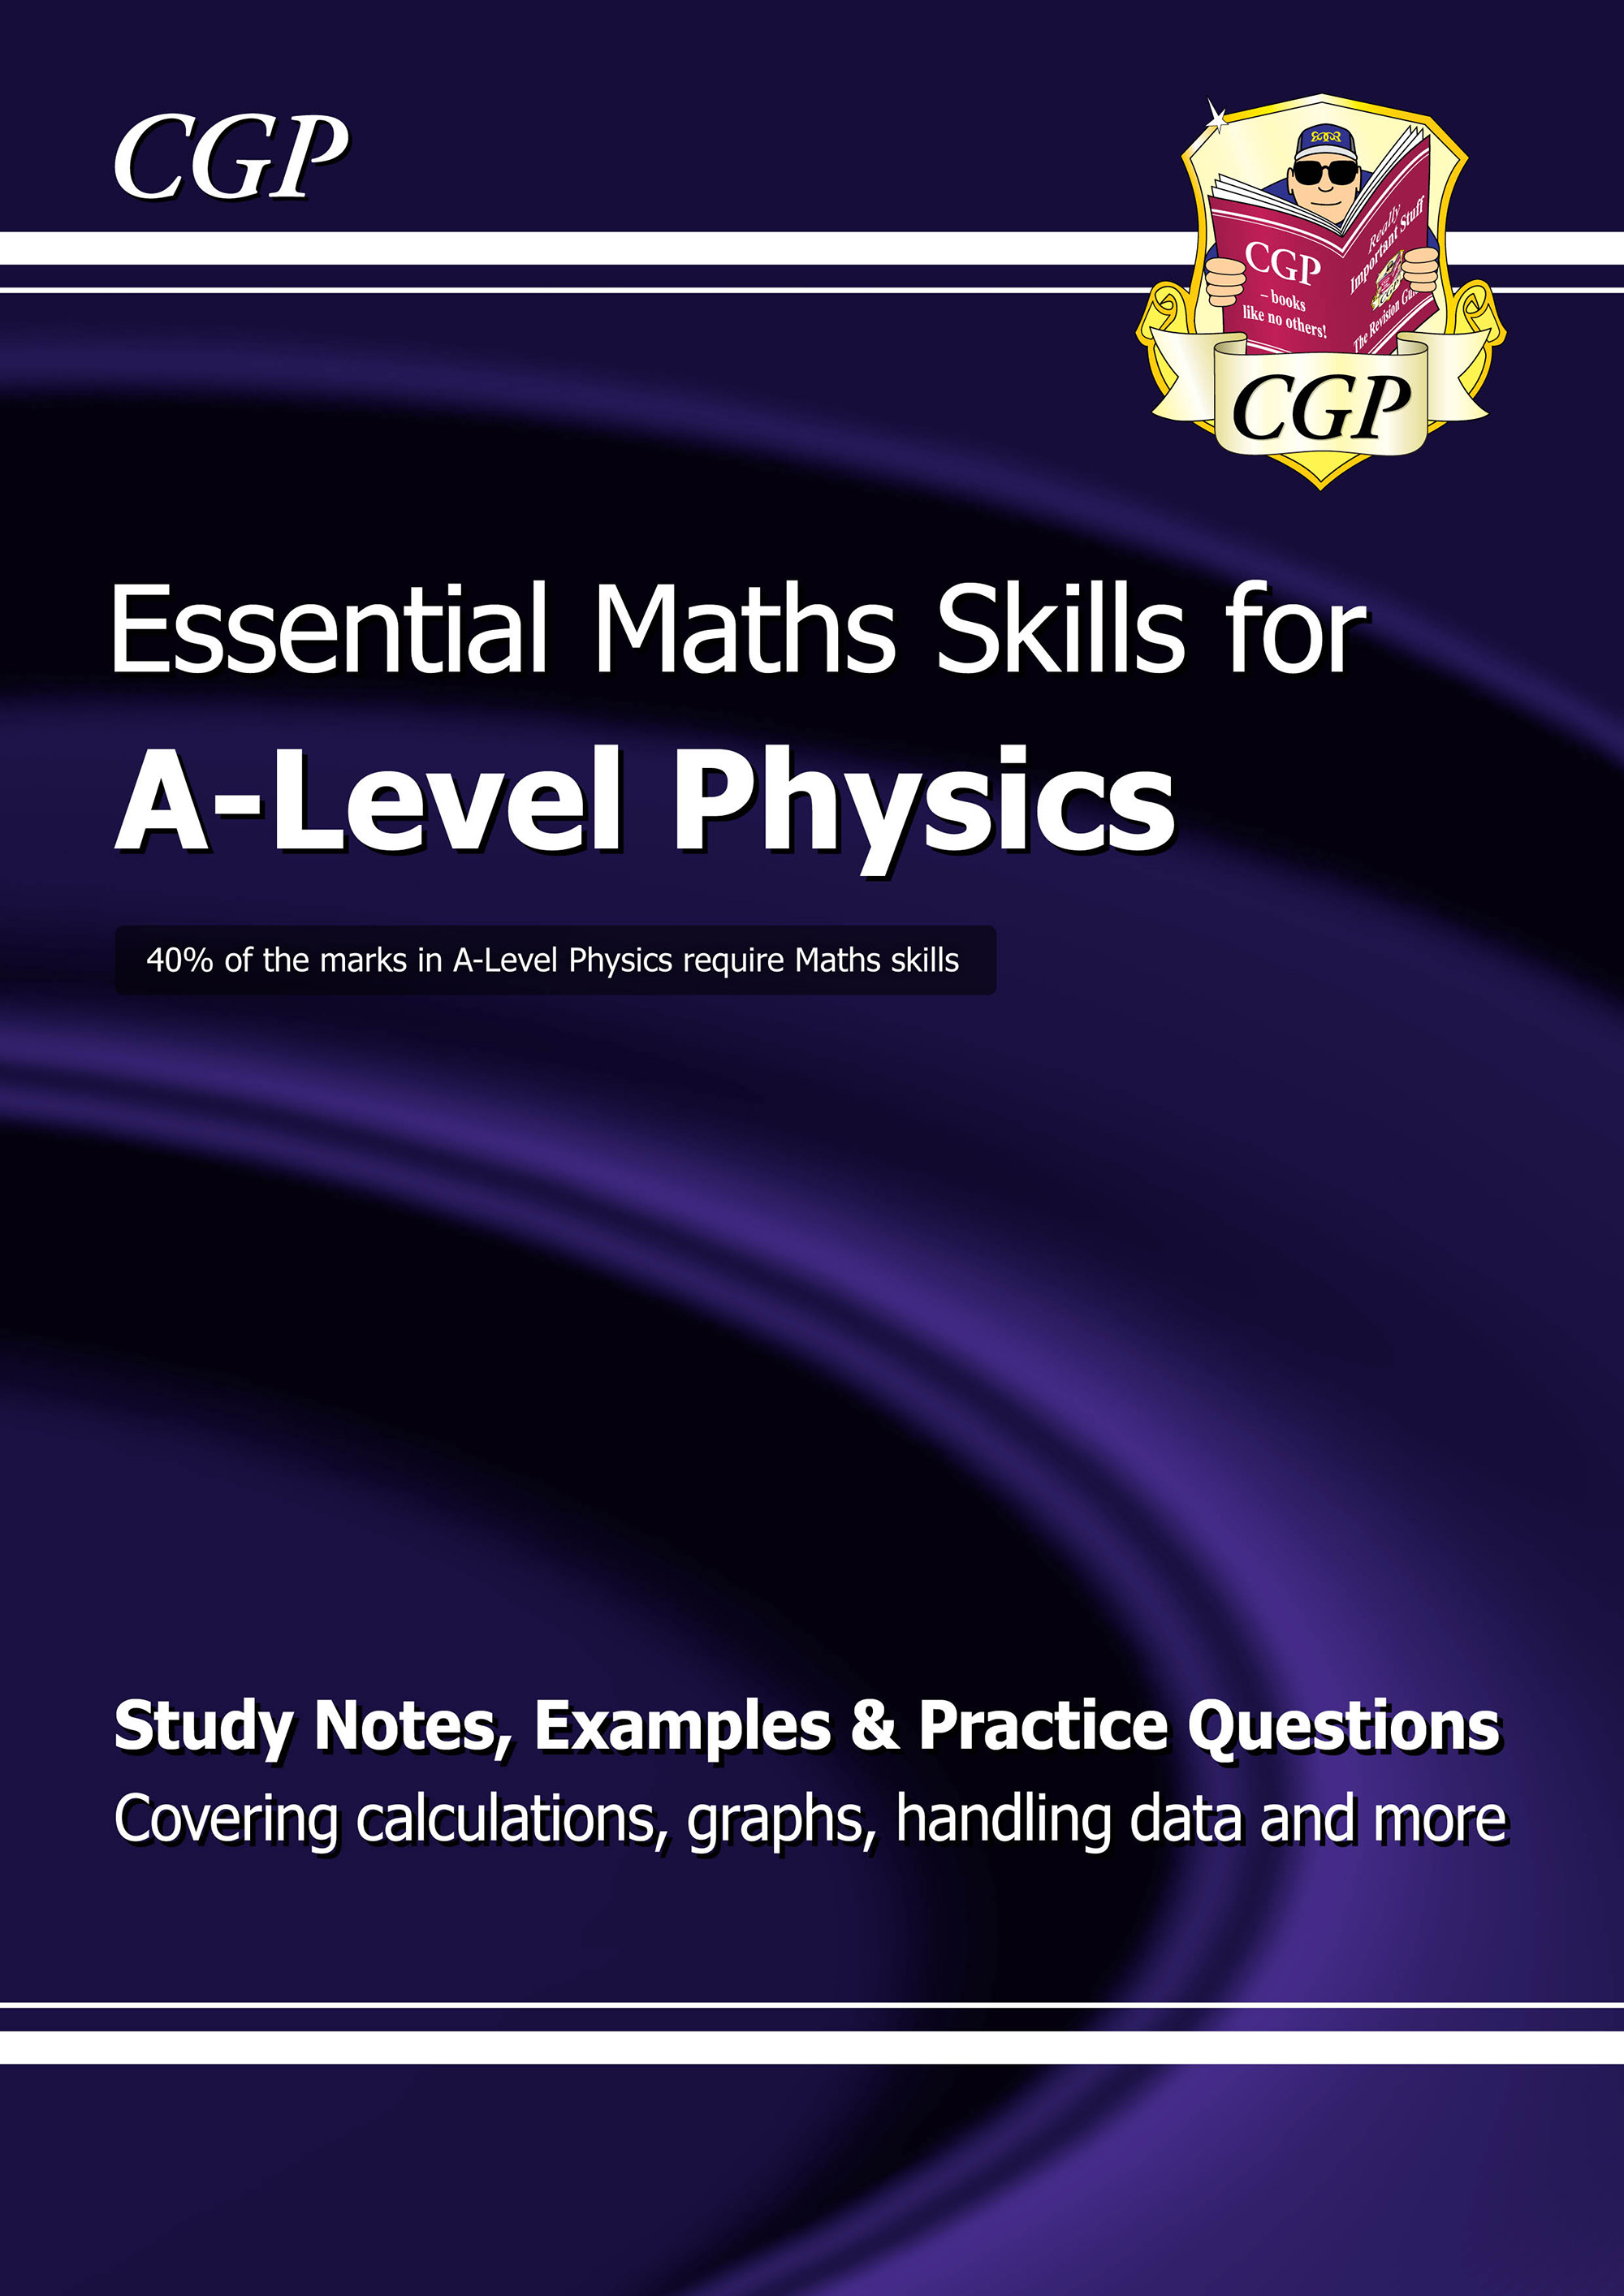 PMR71DK - A-Level Physics: Essential Maths Skills